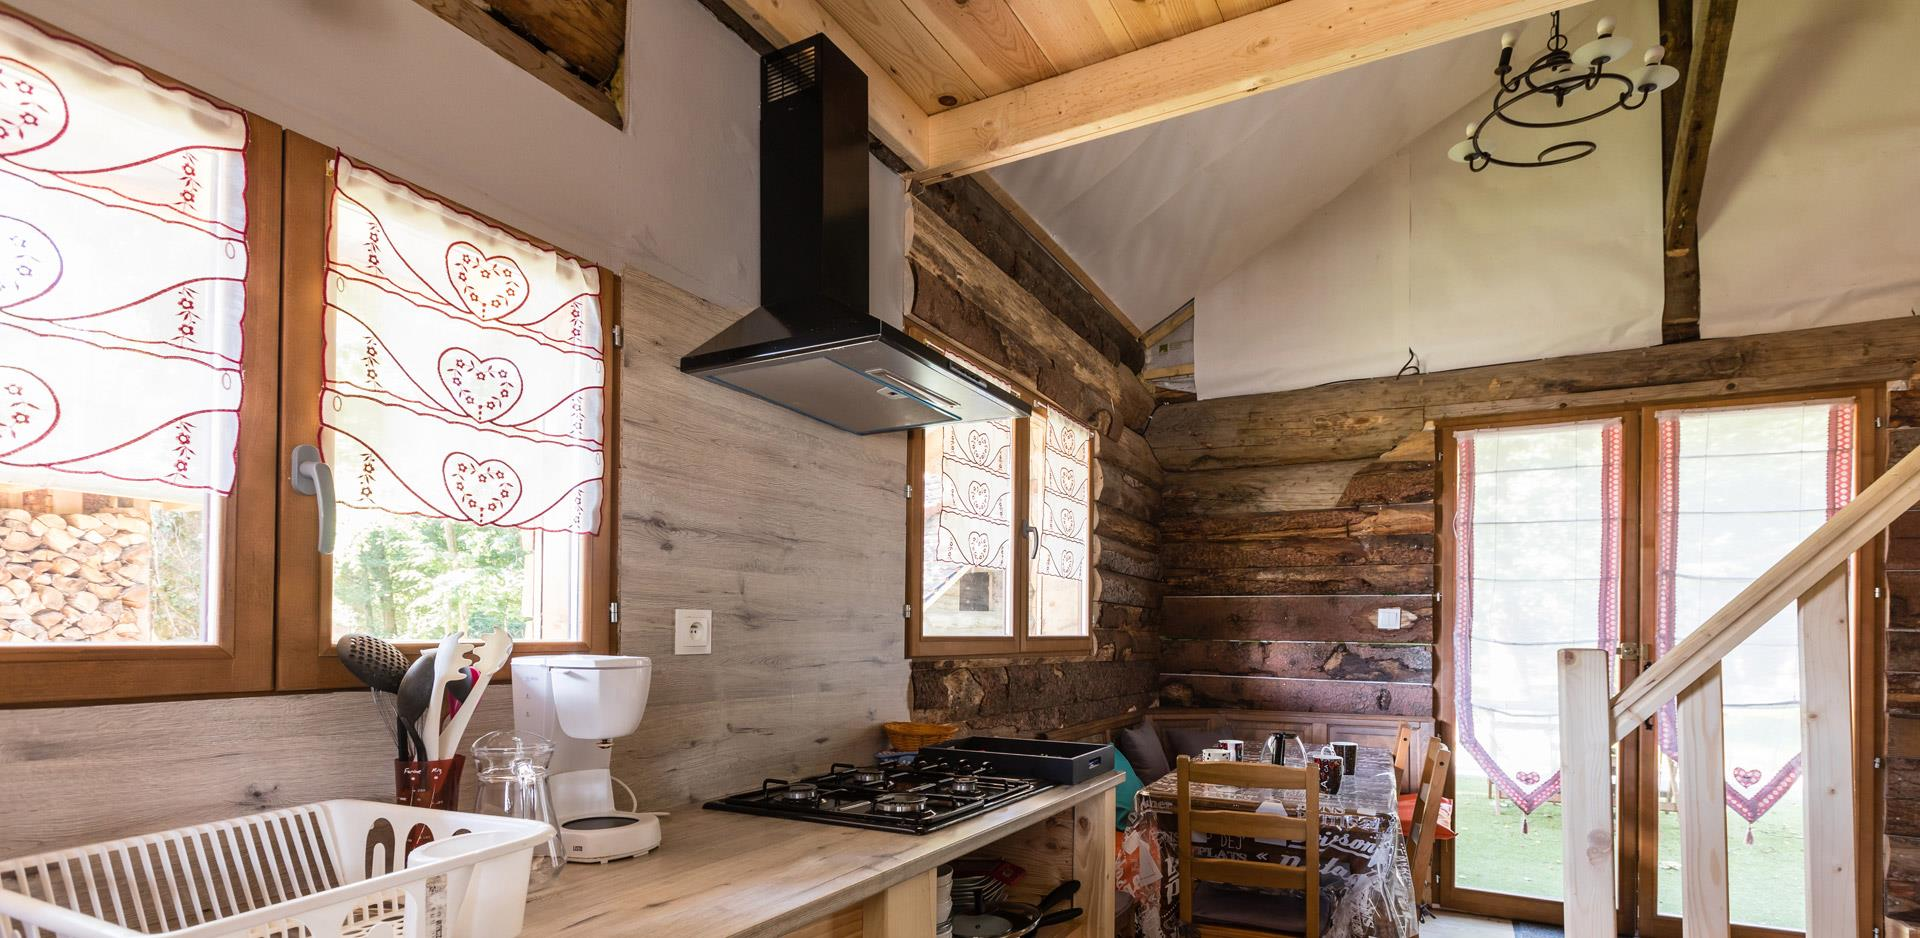 Wooden logs chalet's kitchen, up for rental at the Campsite Les Castors located in Alsace